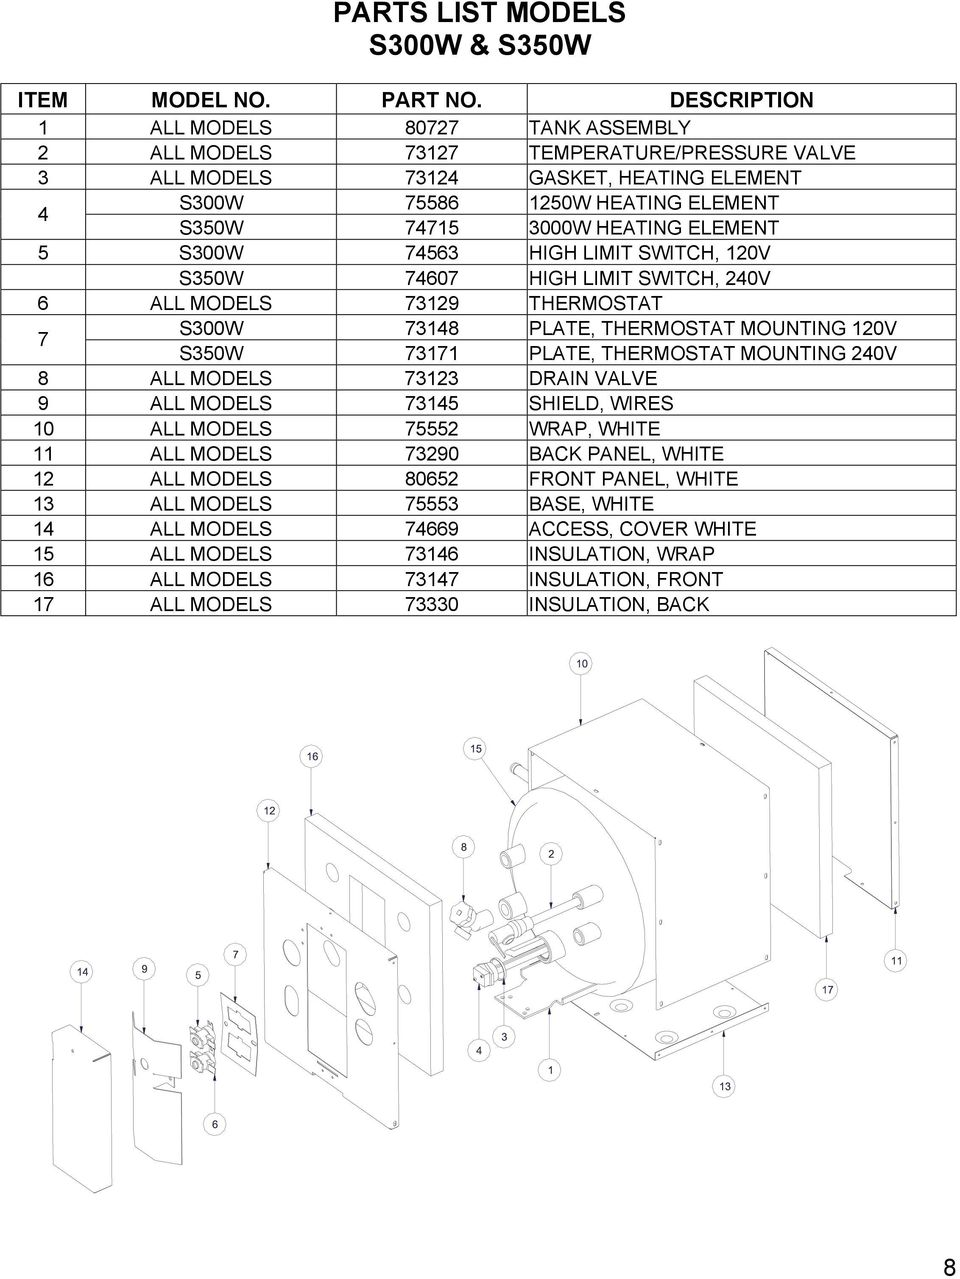 hight resolution of element 5 s300w 74563 high limit switch 120v s350w 74607 high limit switch 240v